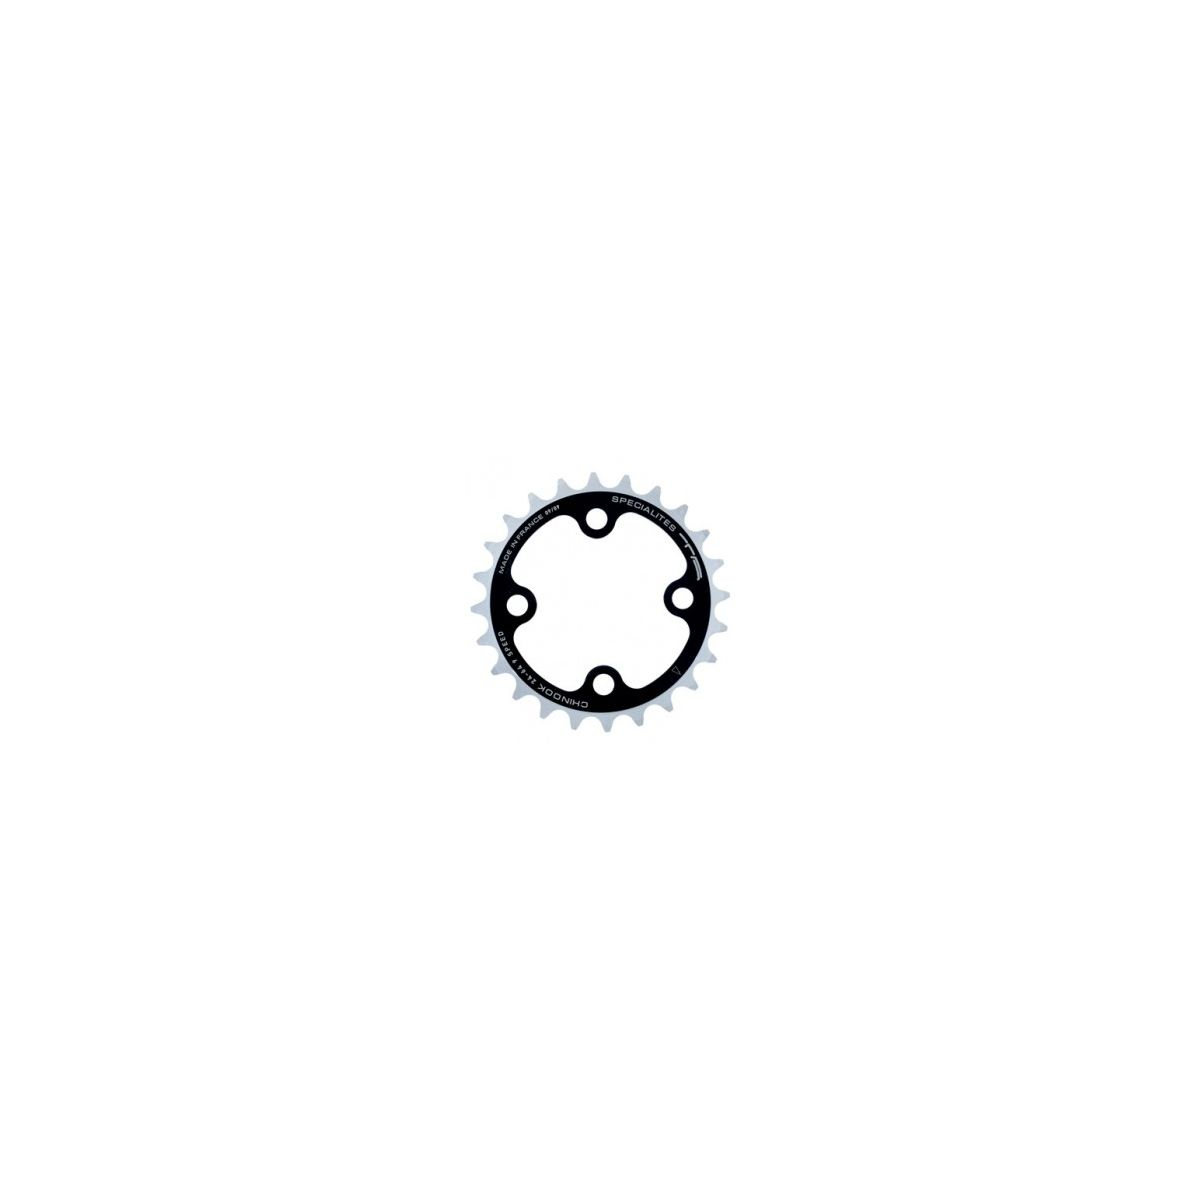 Chinook 9-speed 24-tooth chainring